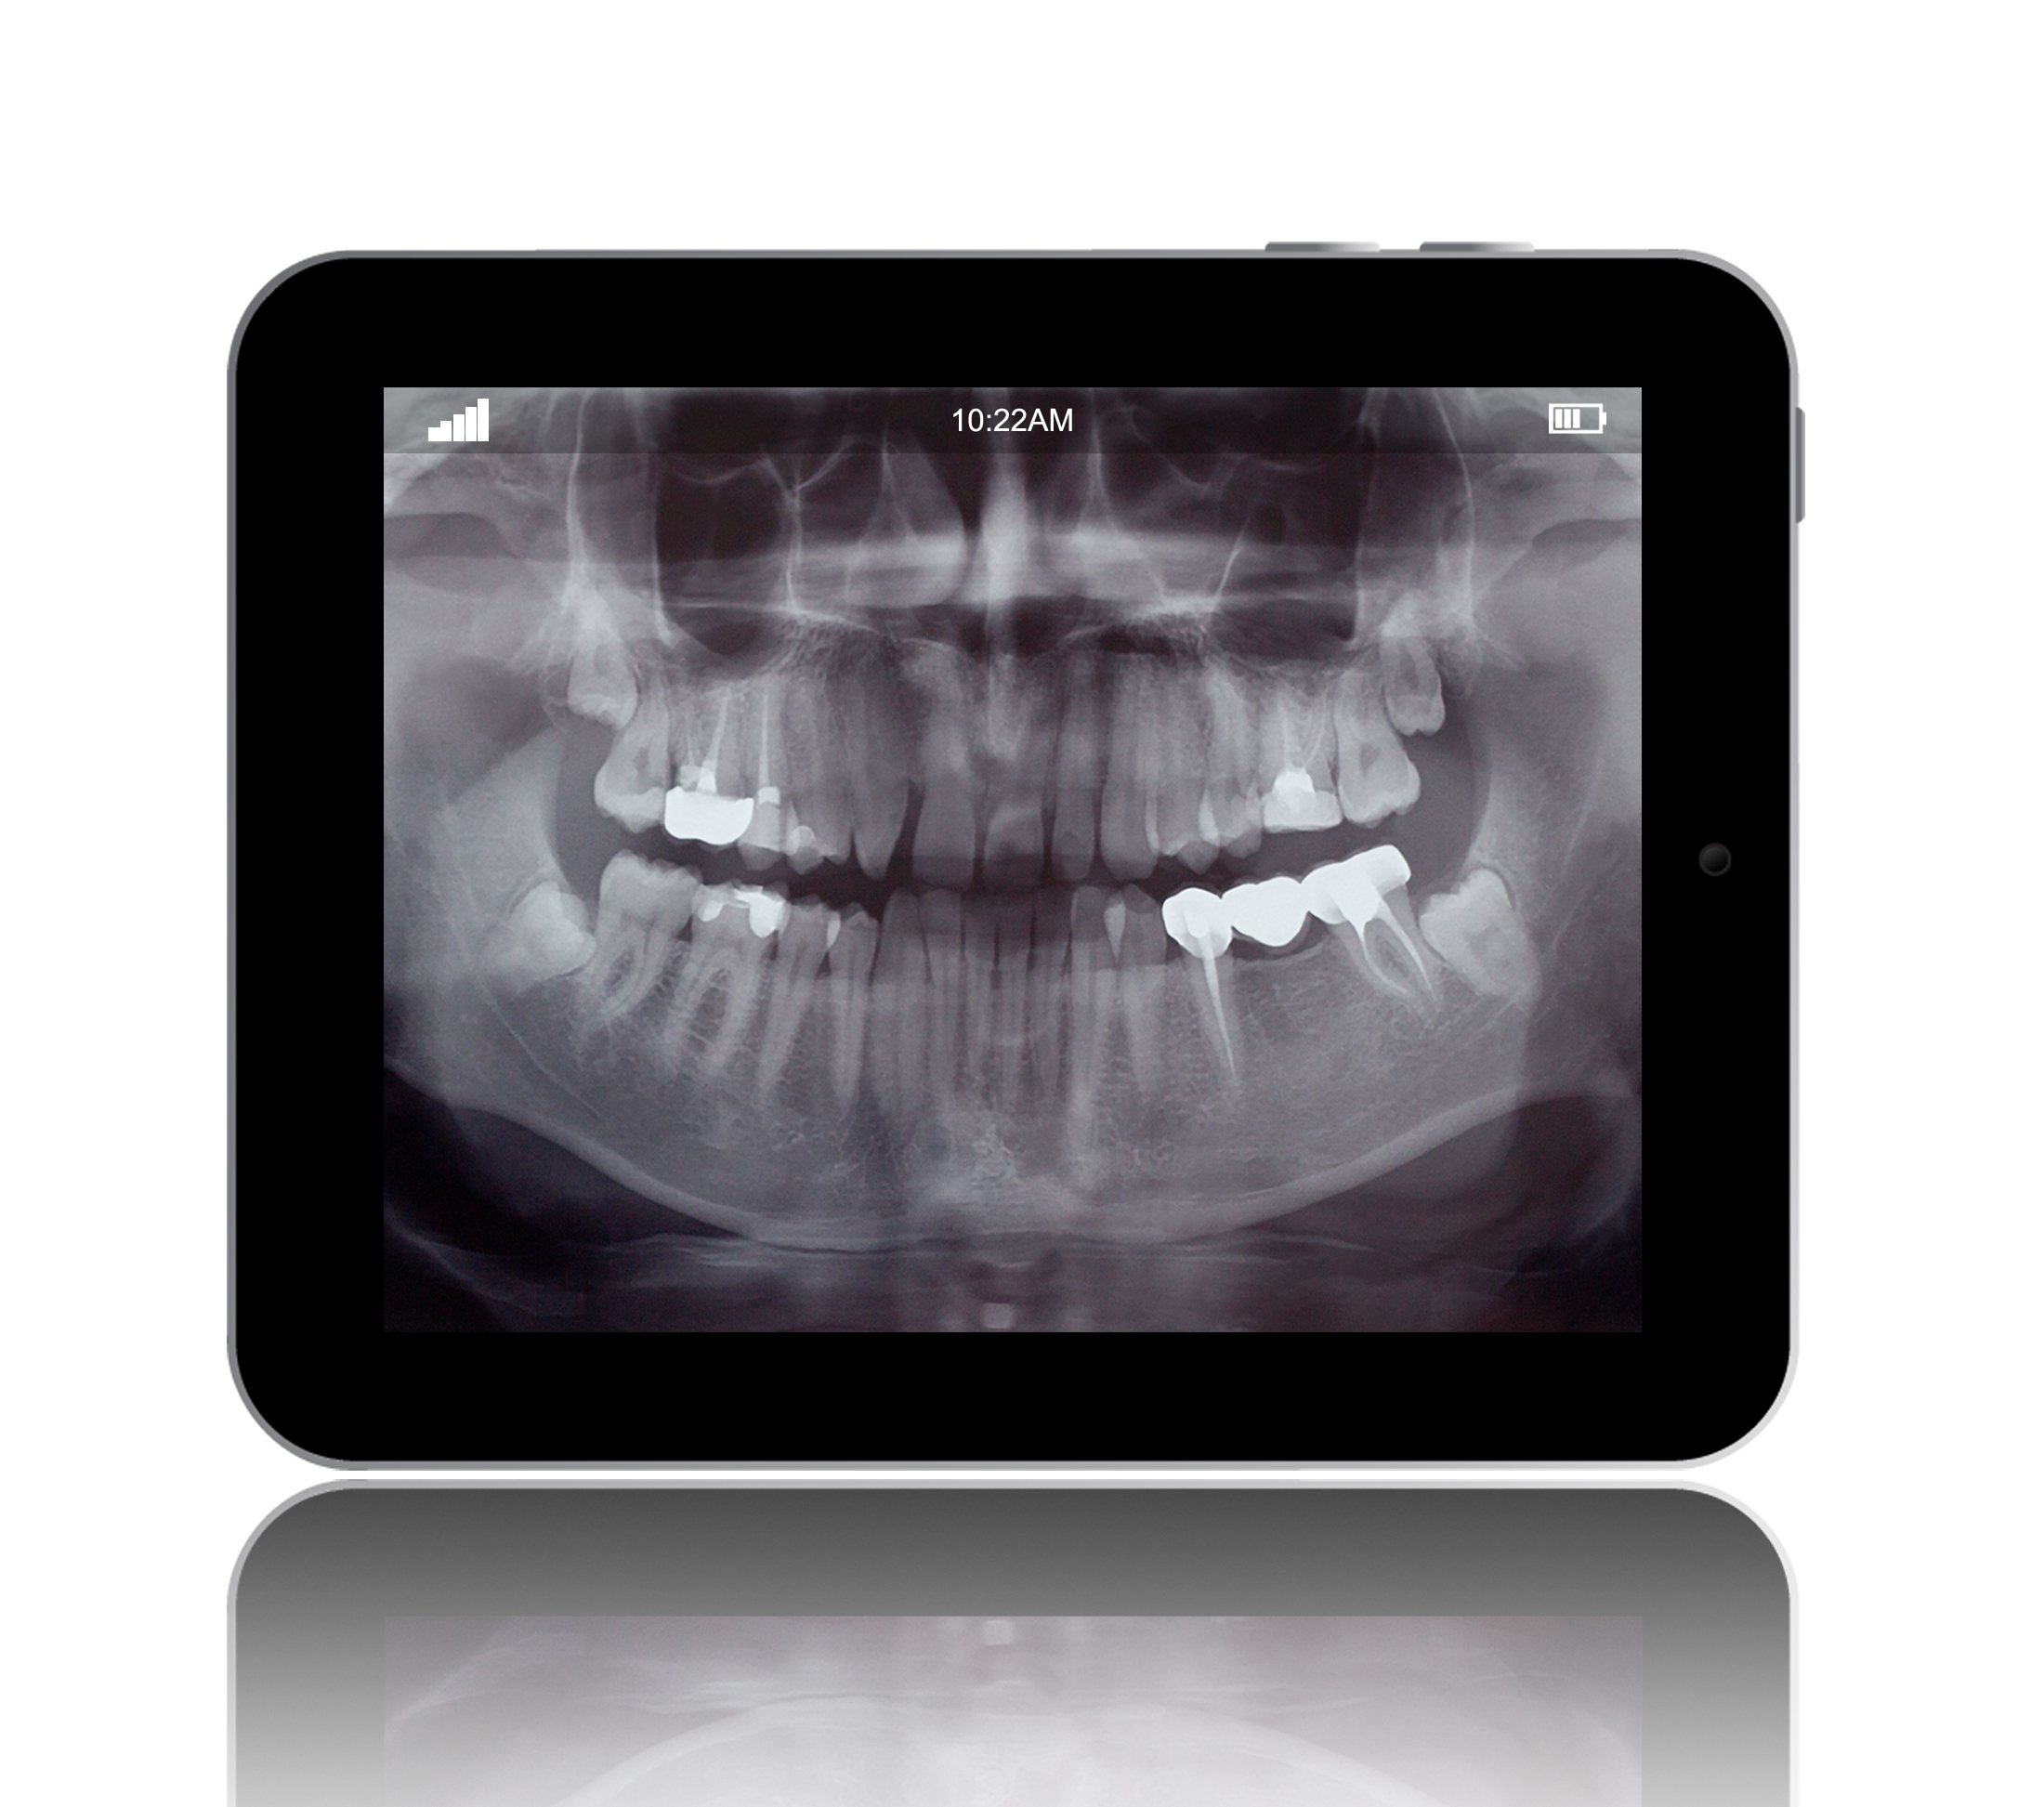 Image of a digital x-ray from Ford Dental Group in Huntington Beach, CA